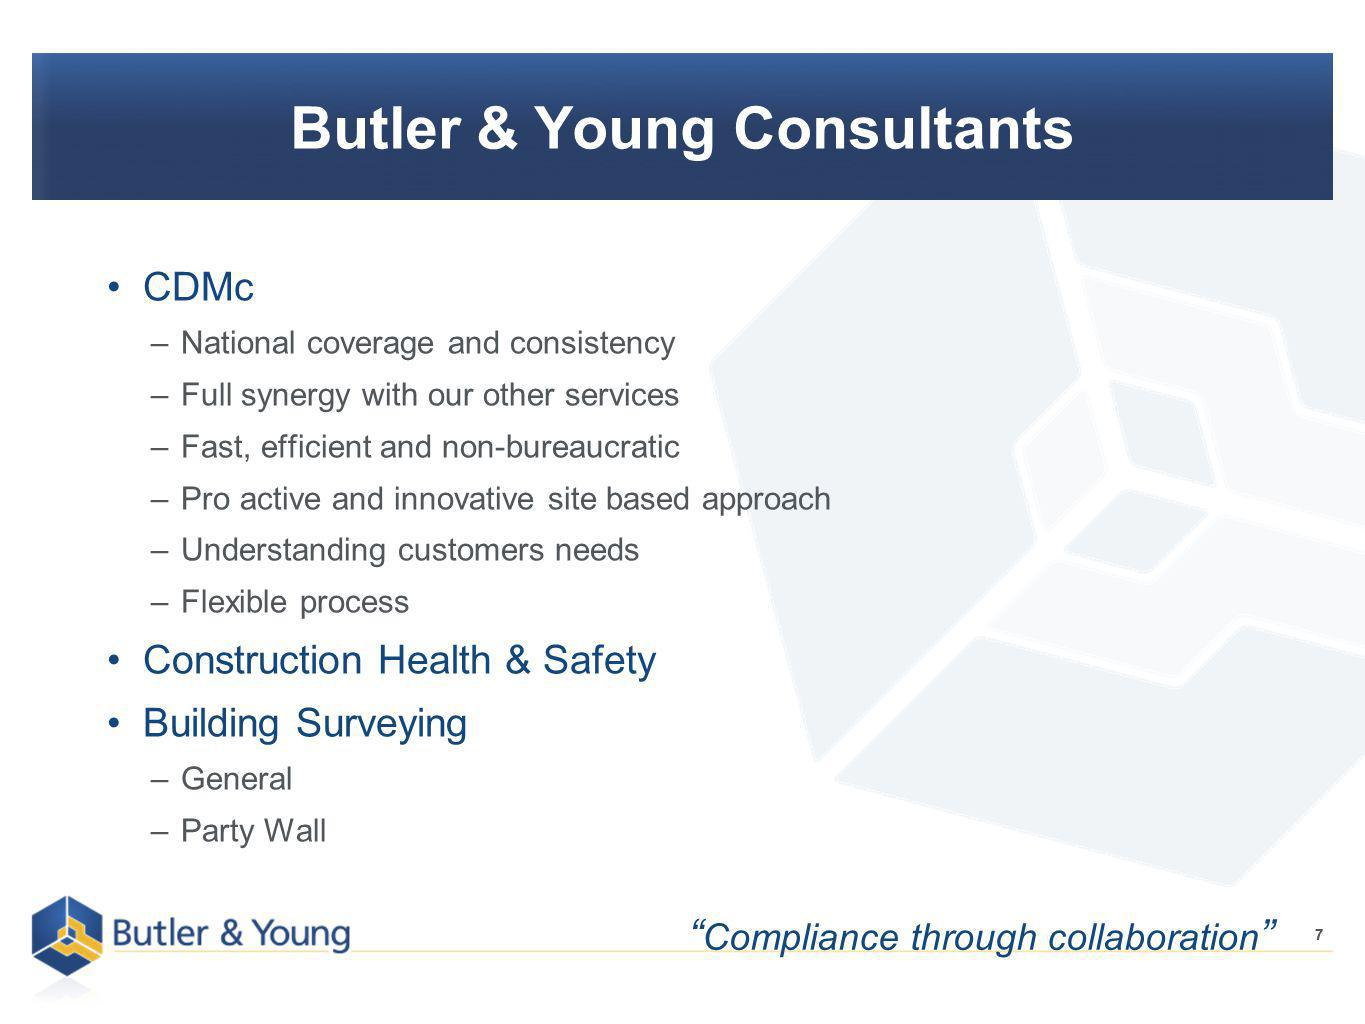 7 Butler & Young Consultants CDMc –National coverage and consistency –Full synergy with our other services –Fast, efficient and non-bureaucratic –Pro active and innovative site based approach –Understanding customers needs –Flexible process Construction Health & Safety Building Surveying –General –Party Wall 7 Compliance through collaboration